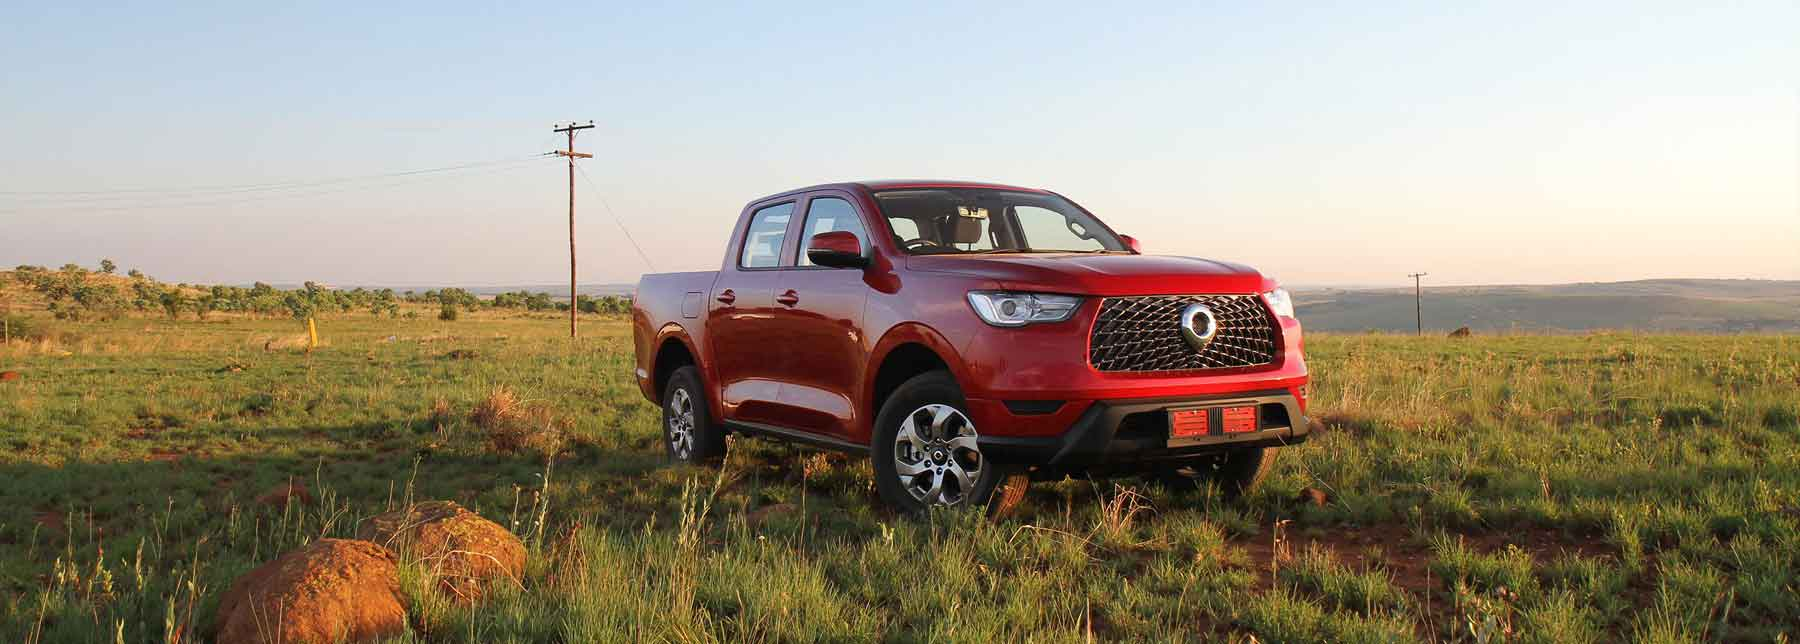 GWM P-Series is changing perceptions